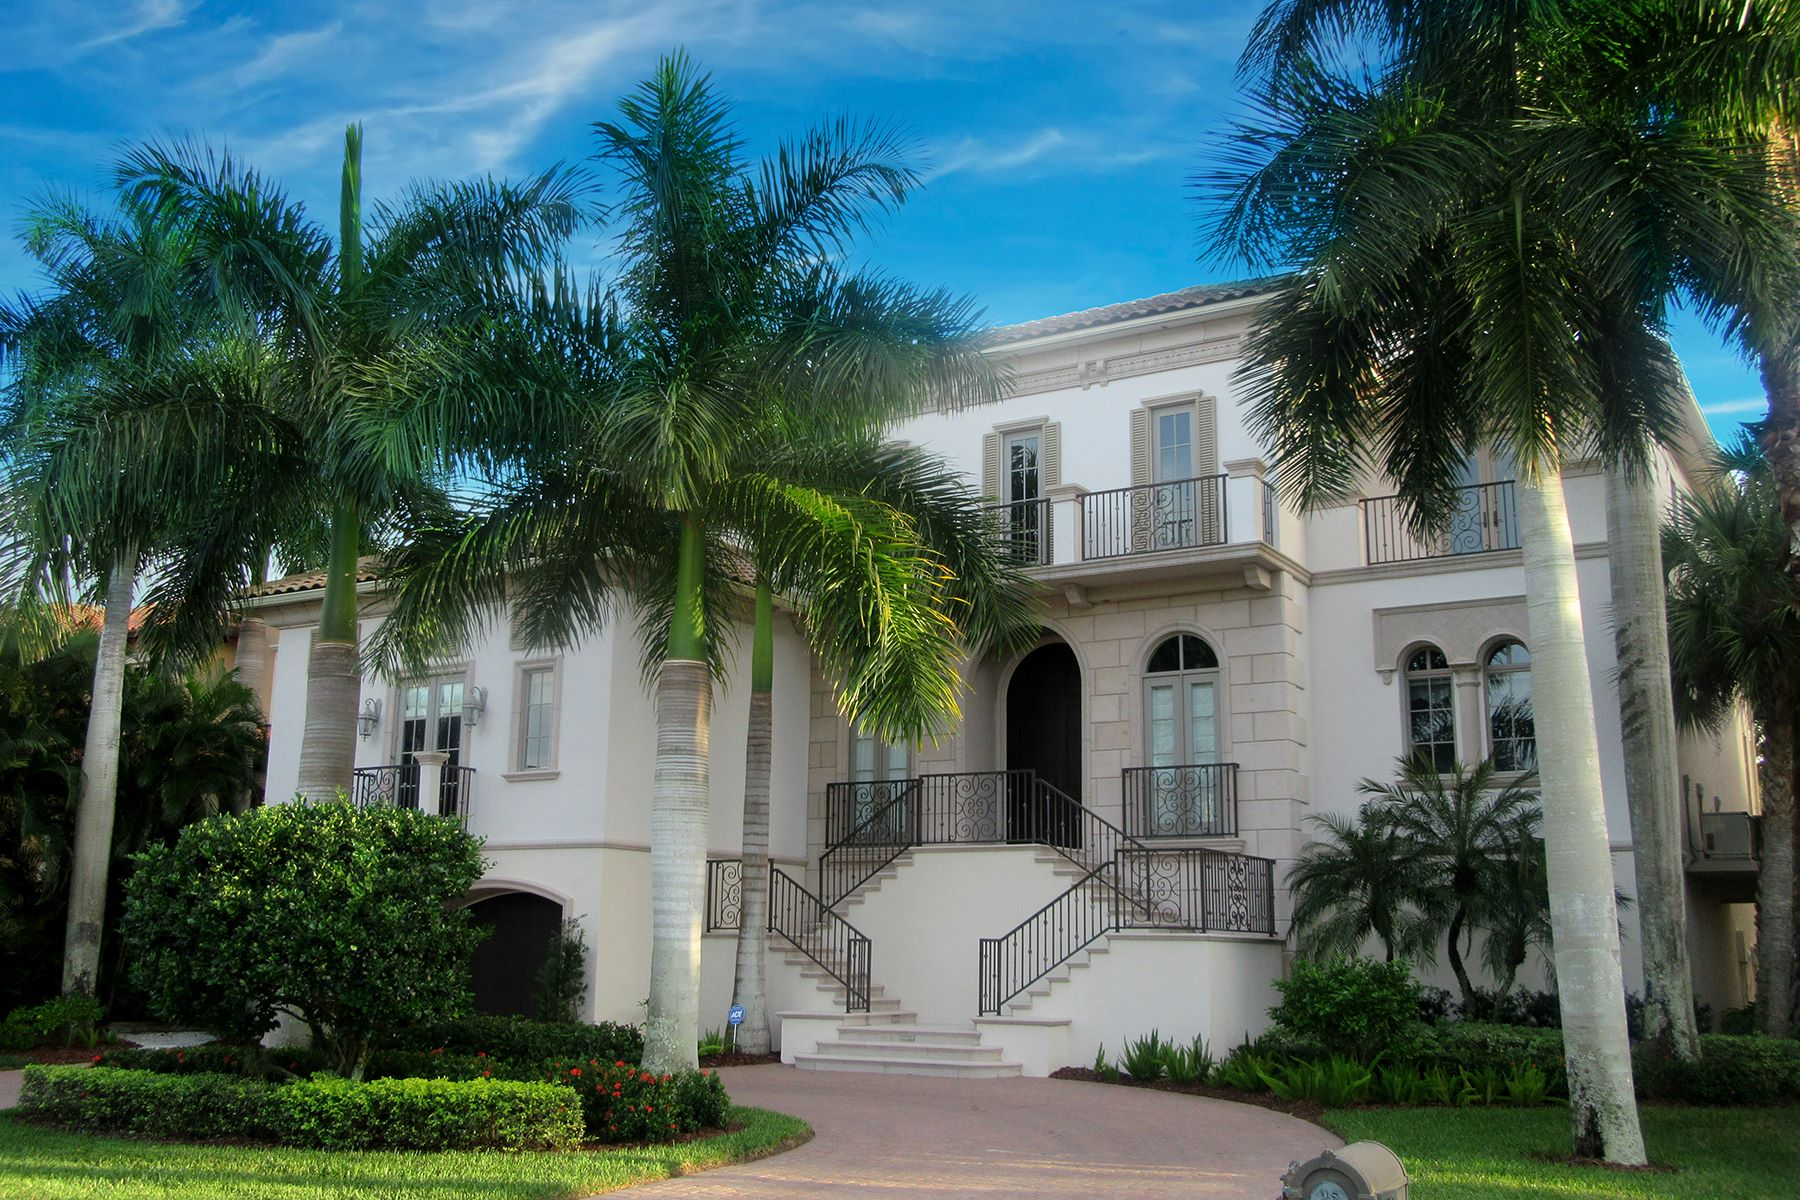 Single Family Home for Sale at VANDERBILT BEACH - CONNERS 172 Seabreeze Ave Naples, Florida, 34108 United States